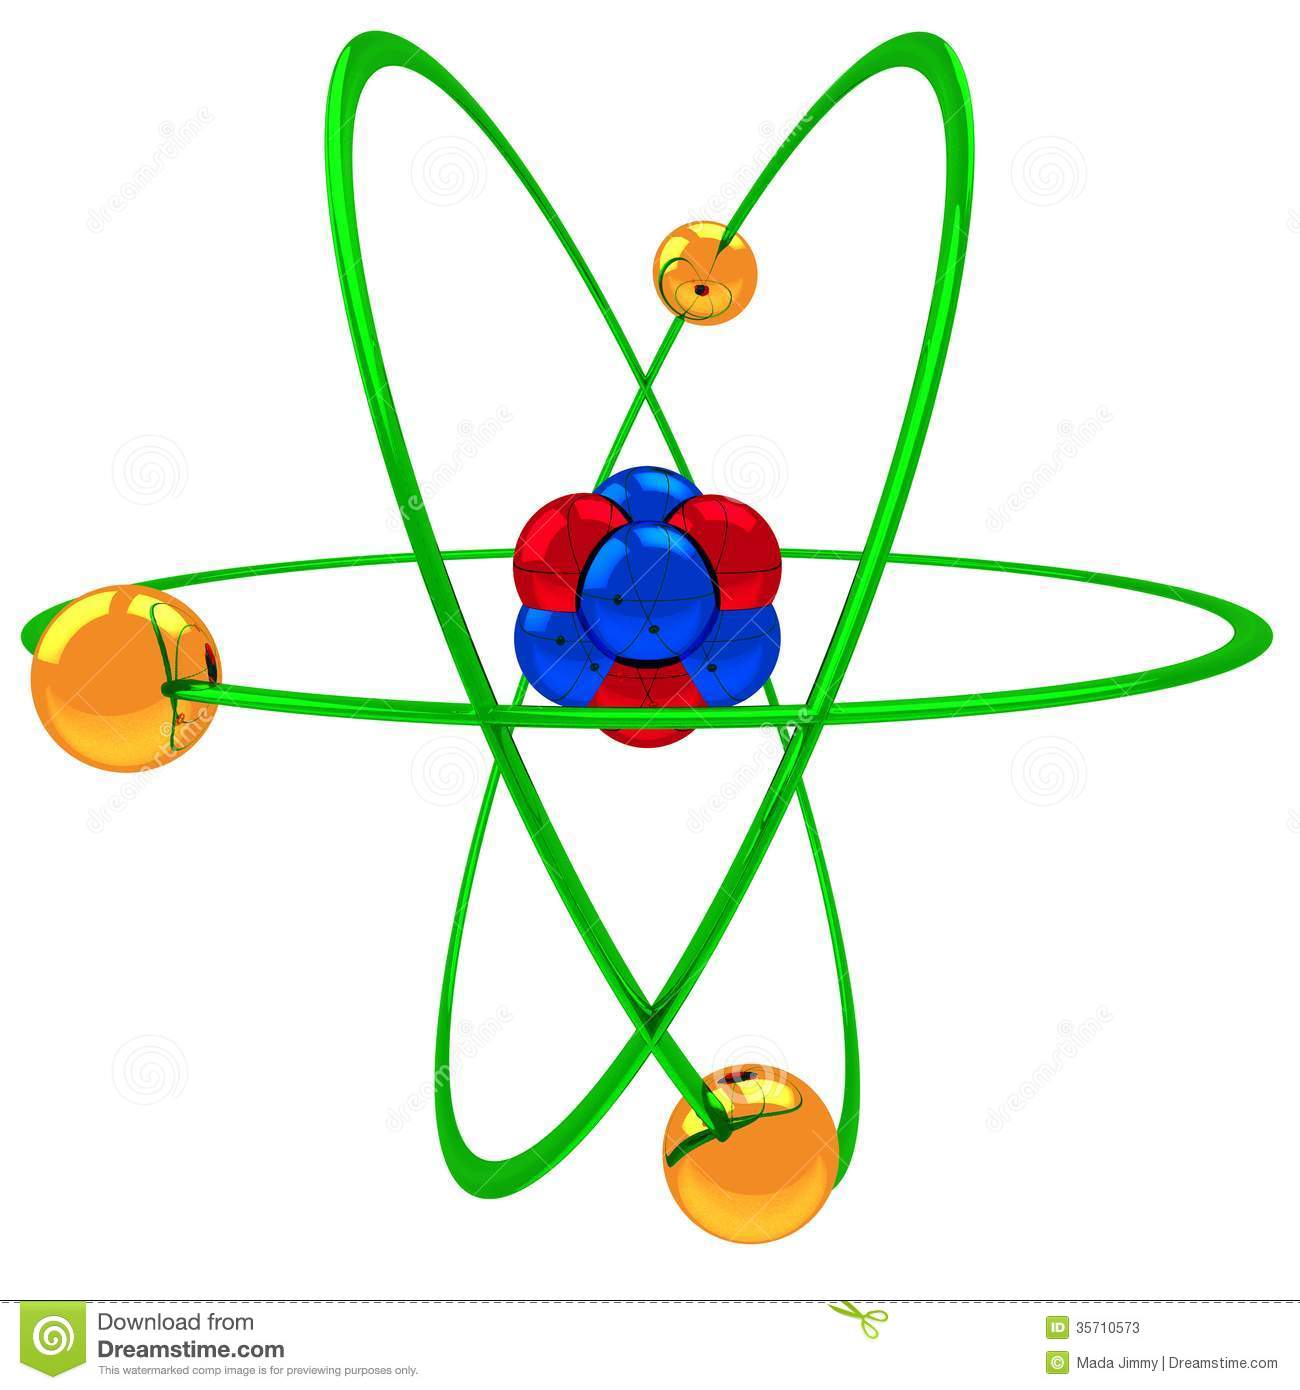 Atom structure clipart.